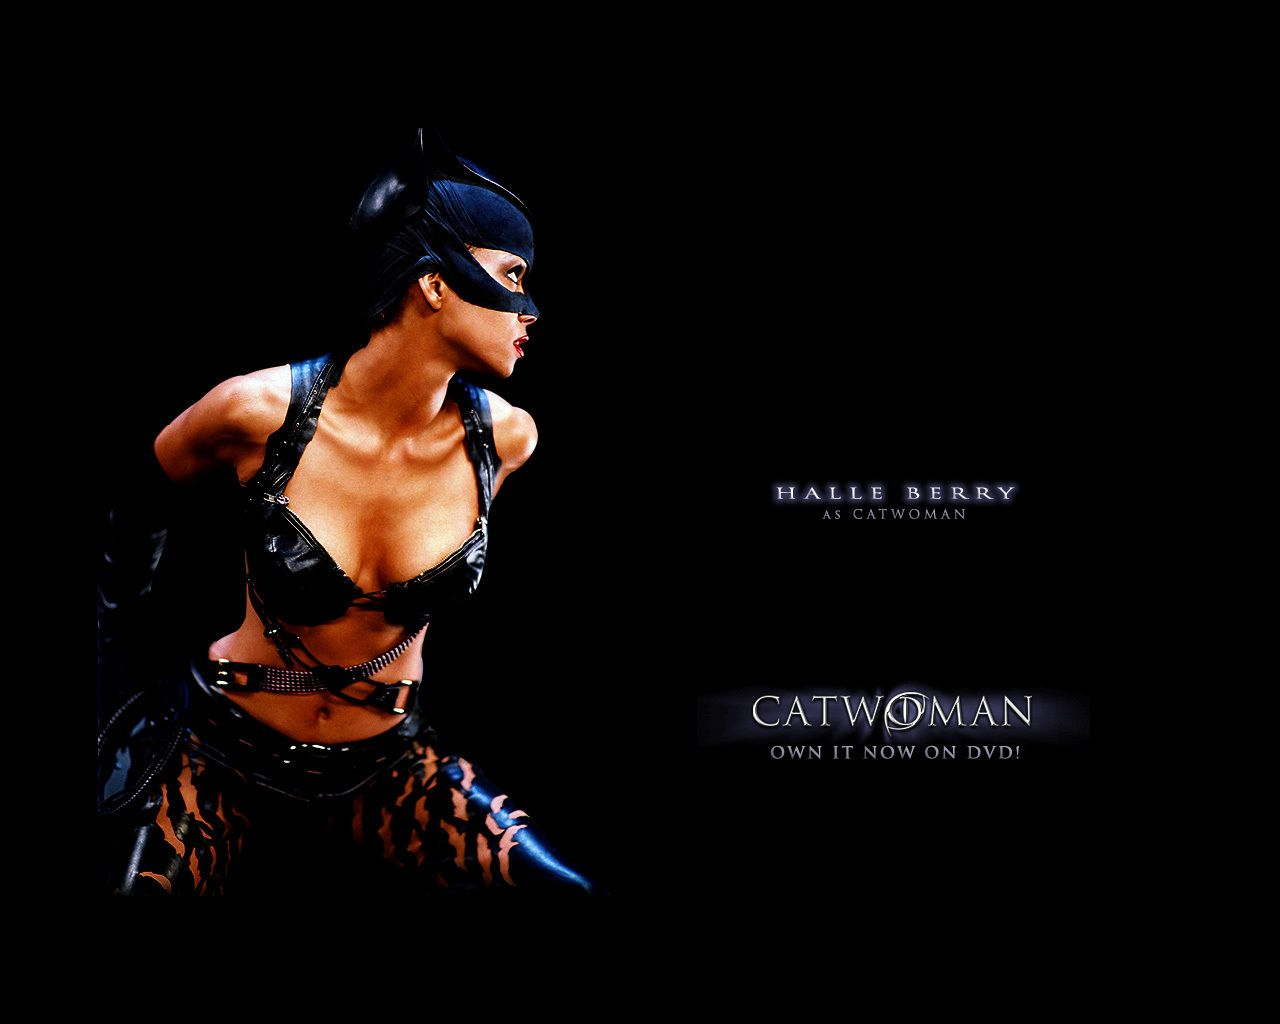 Catwoman Movie Wallpapers - Wallpaper Cave